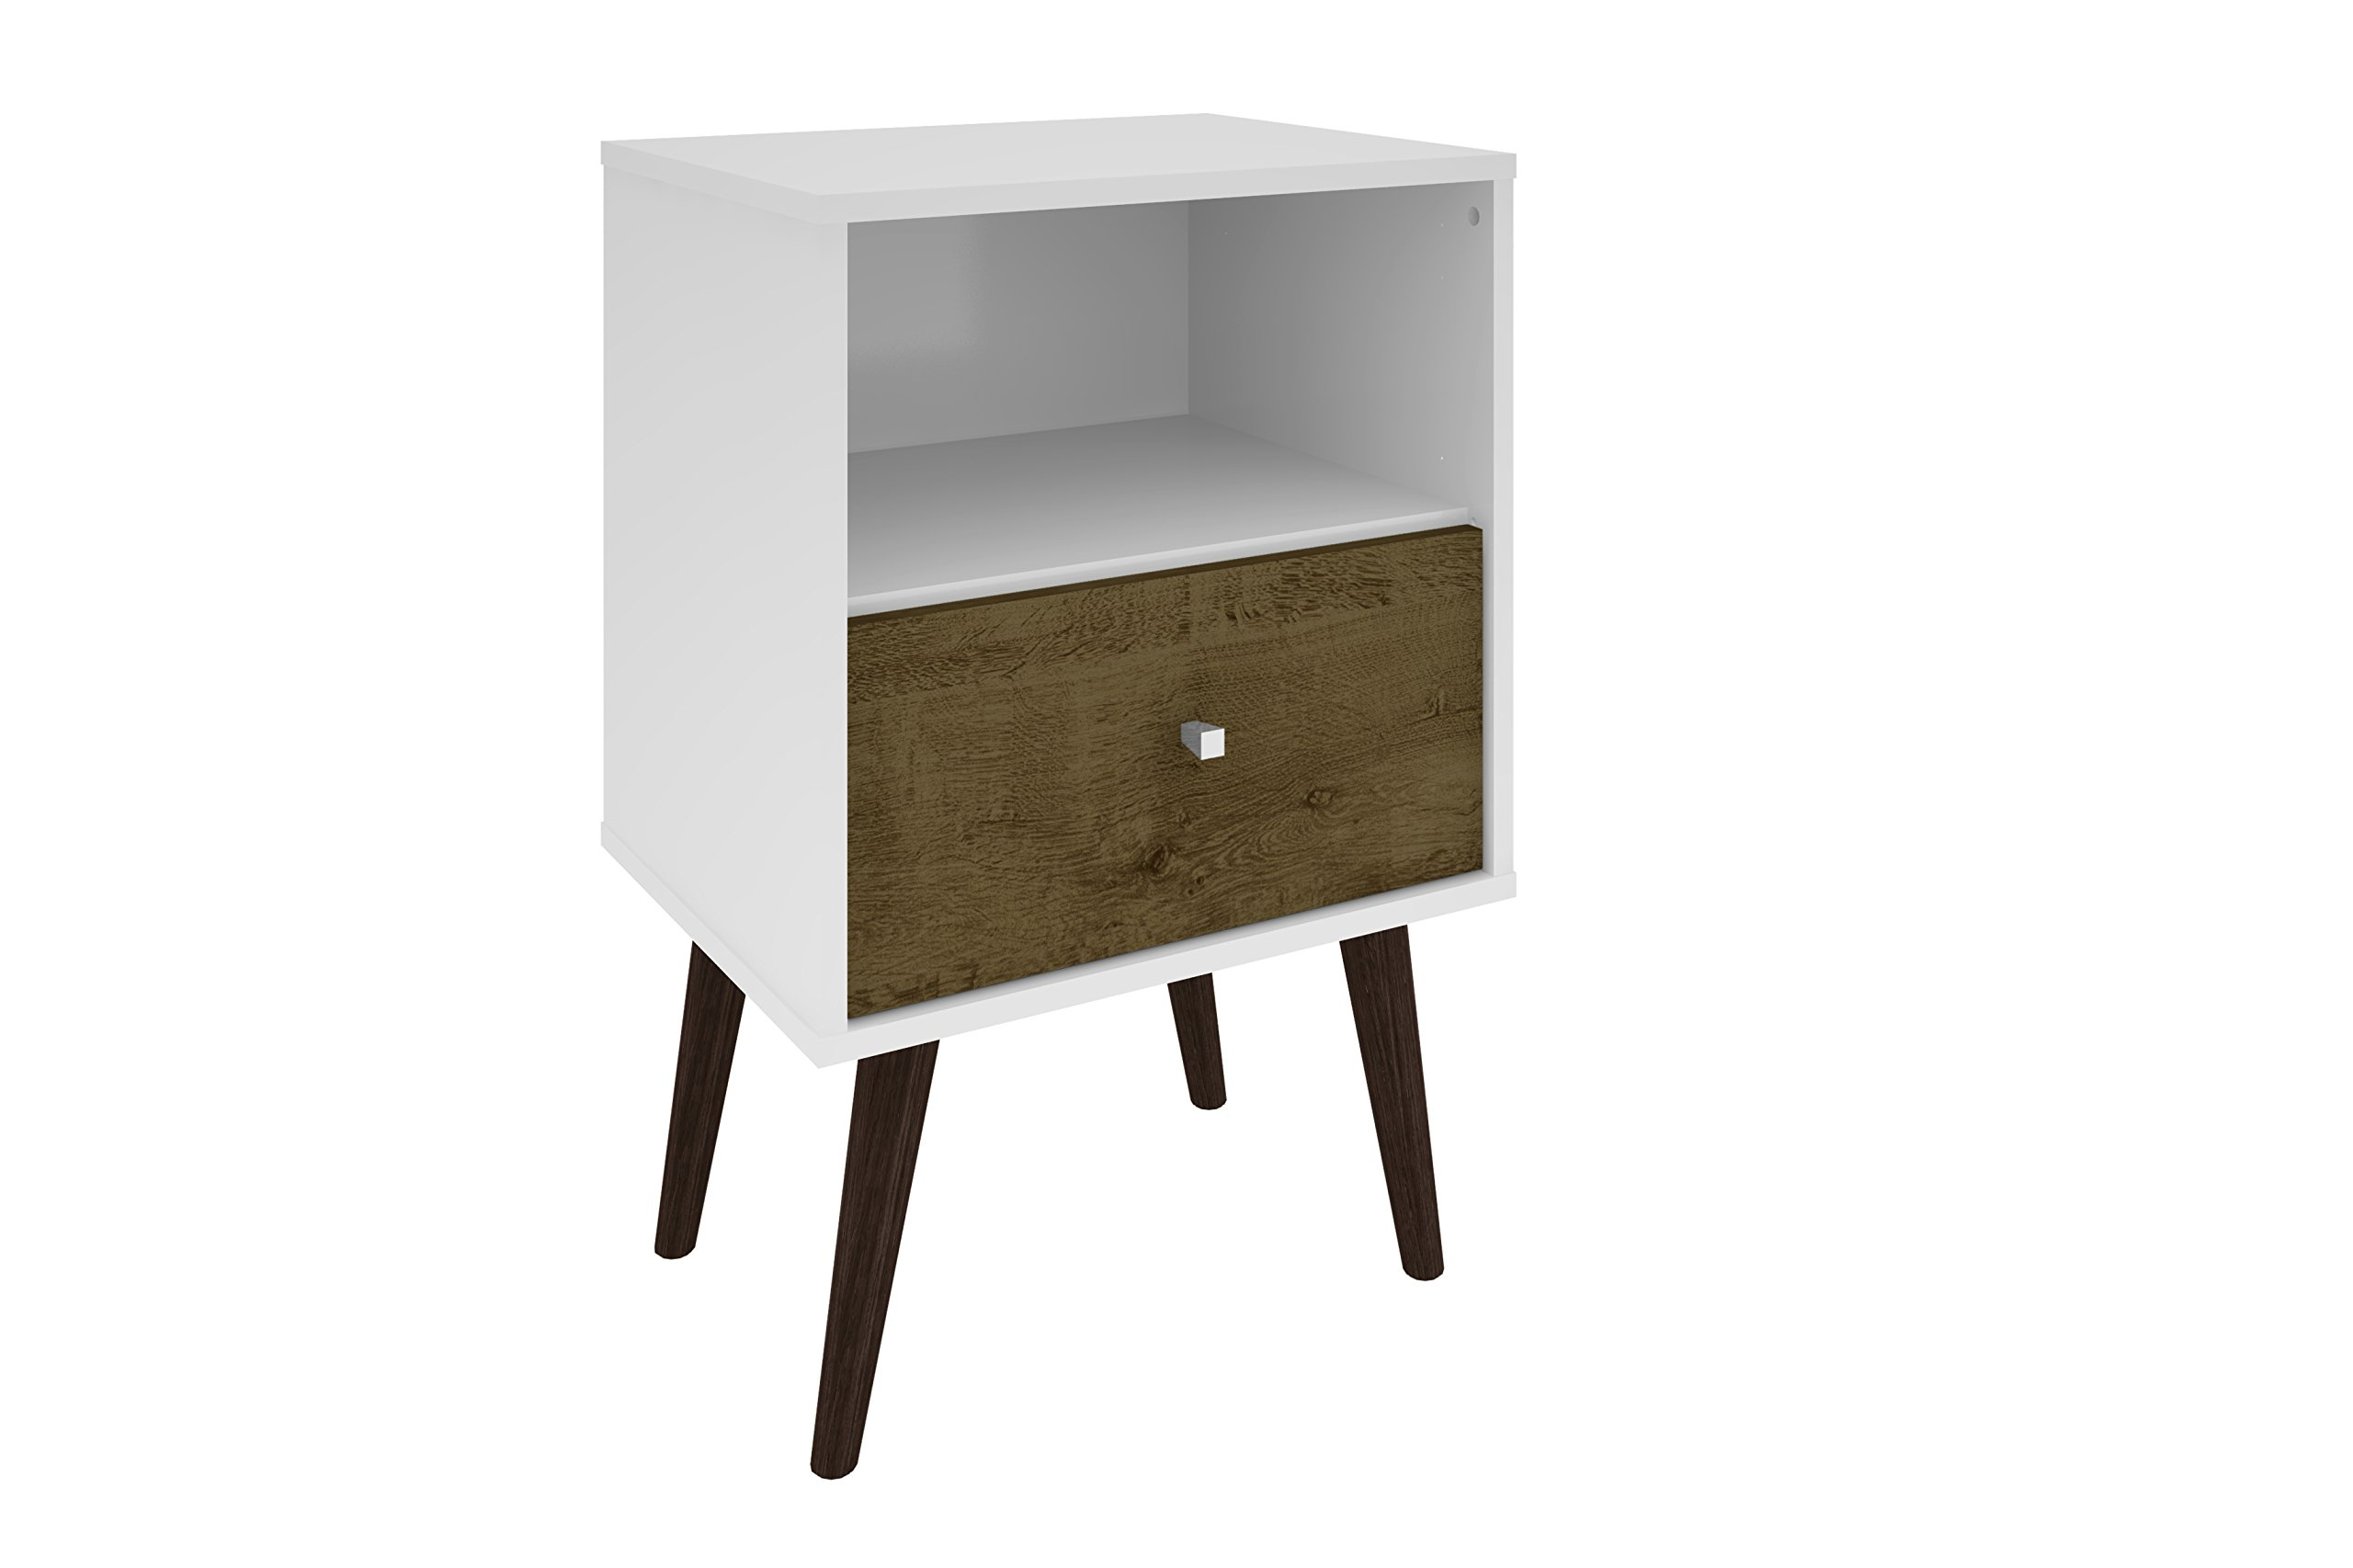 Manhattan Comfort Liberty Collection Mid Century Modern Nightstand With One Open Shelf and One Drawer, Splayed Legs, White/Wood by Manhattan Comfort